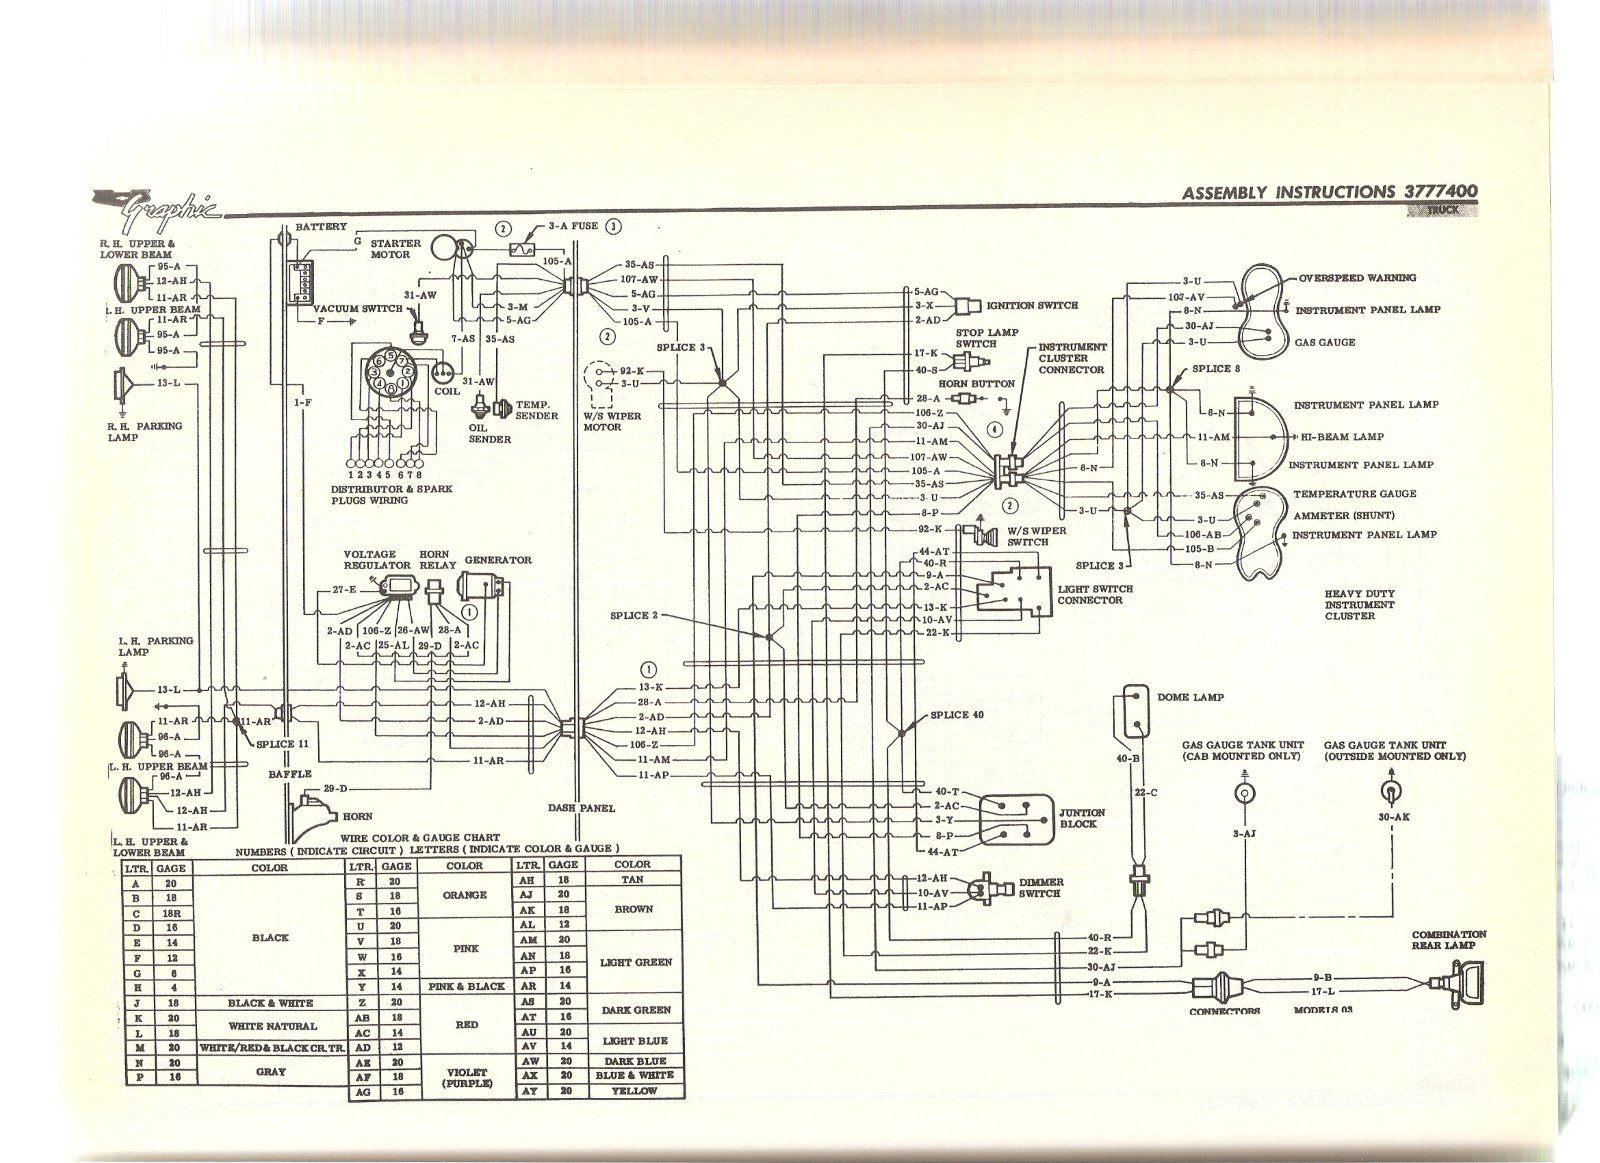 wiring diagram for 1961 chevy c10 apache 1958 chevy apache 1966 GMC Truck Wiring Diagrams 1966 GMC Truck Wiring Diagrams